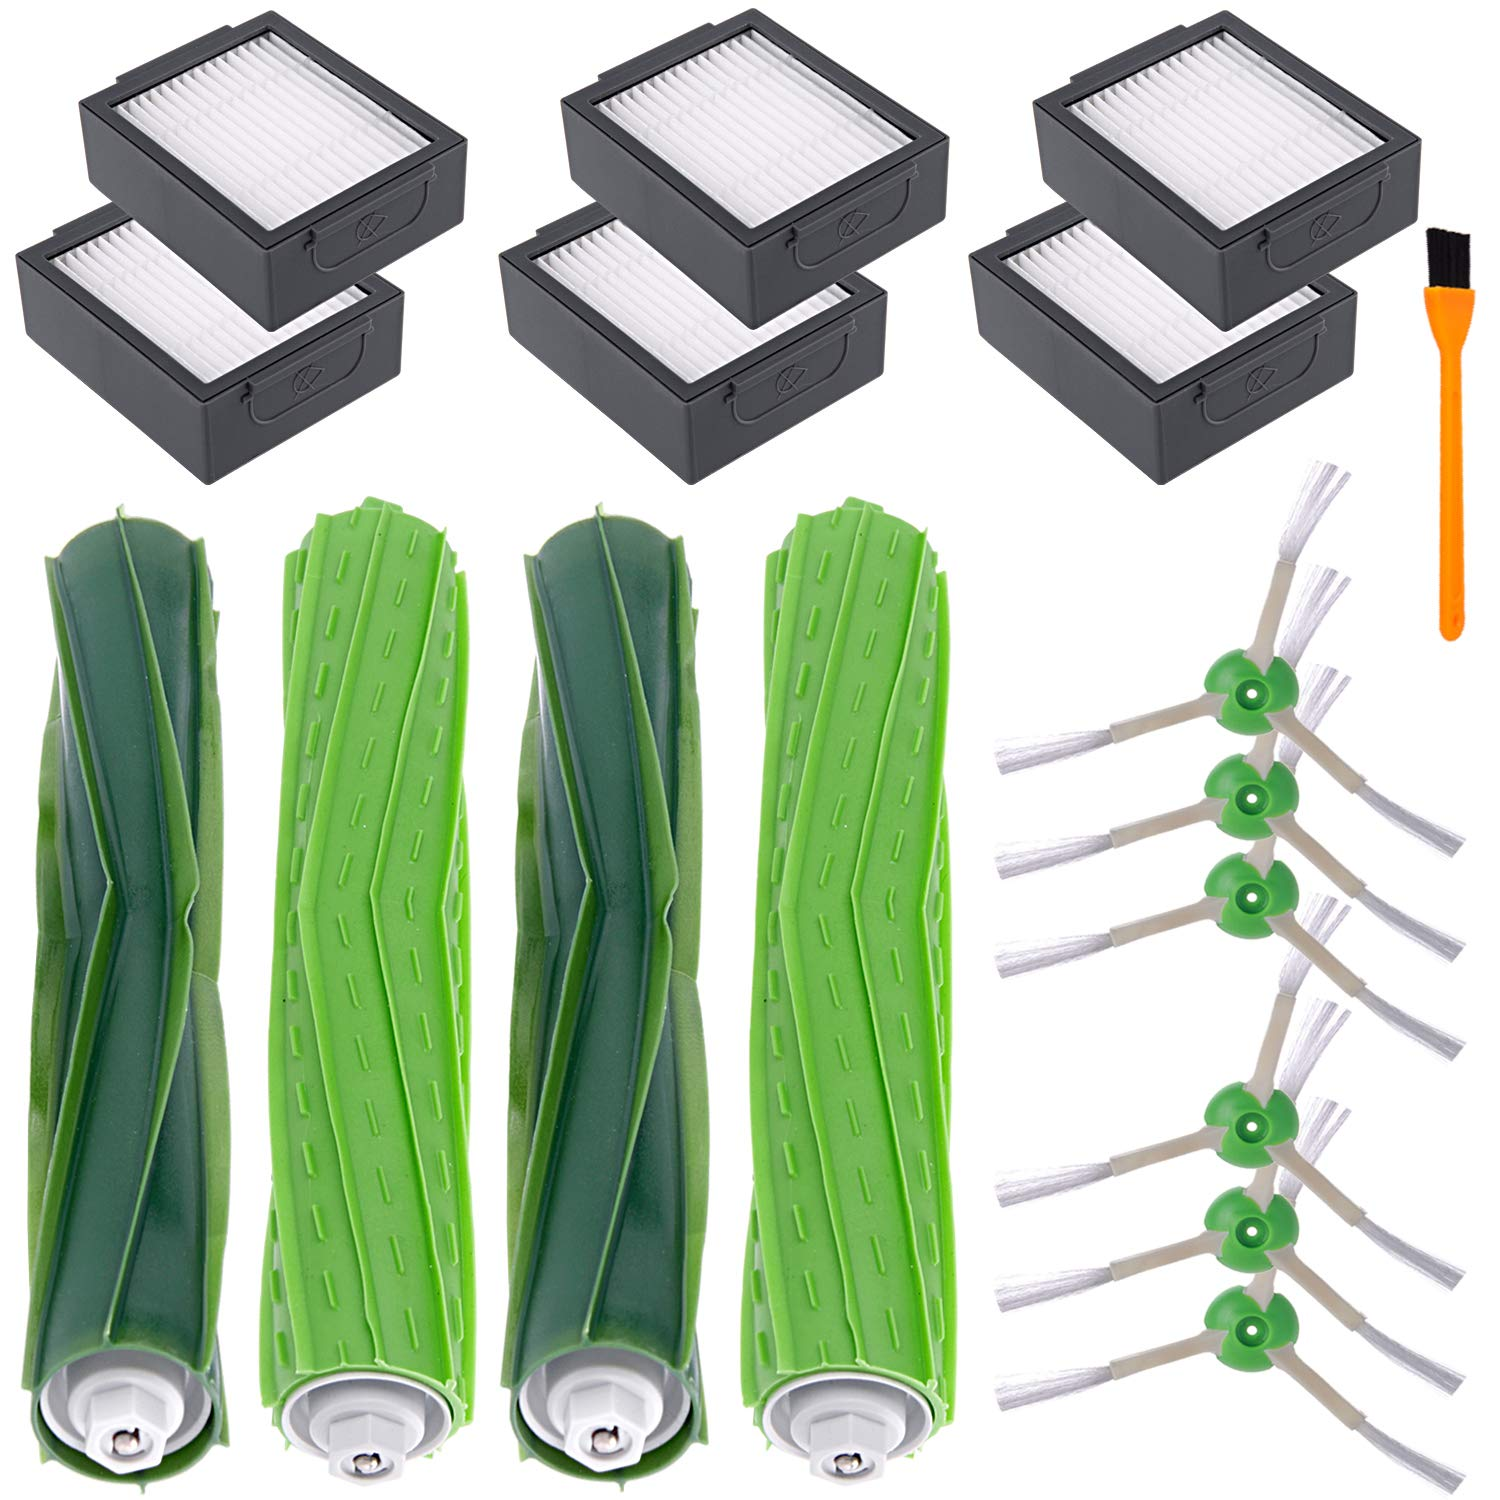 Hongfa i7 i7+ i7 Plus E6 E5 Parts for iRobot Roomba, Replenishment Parts Include : 2 Sets Rubber Brushes,6 Filters 6 Side Brushes with Screw